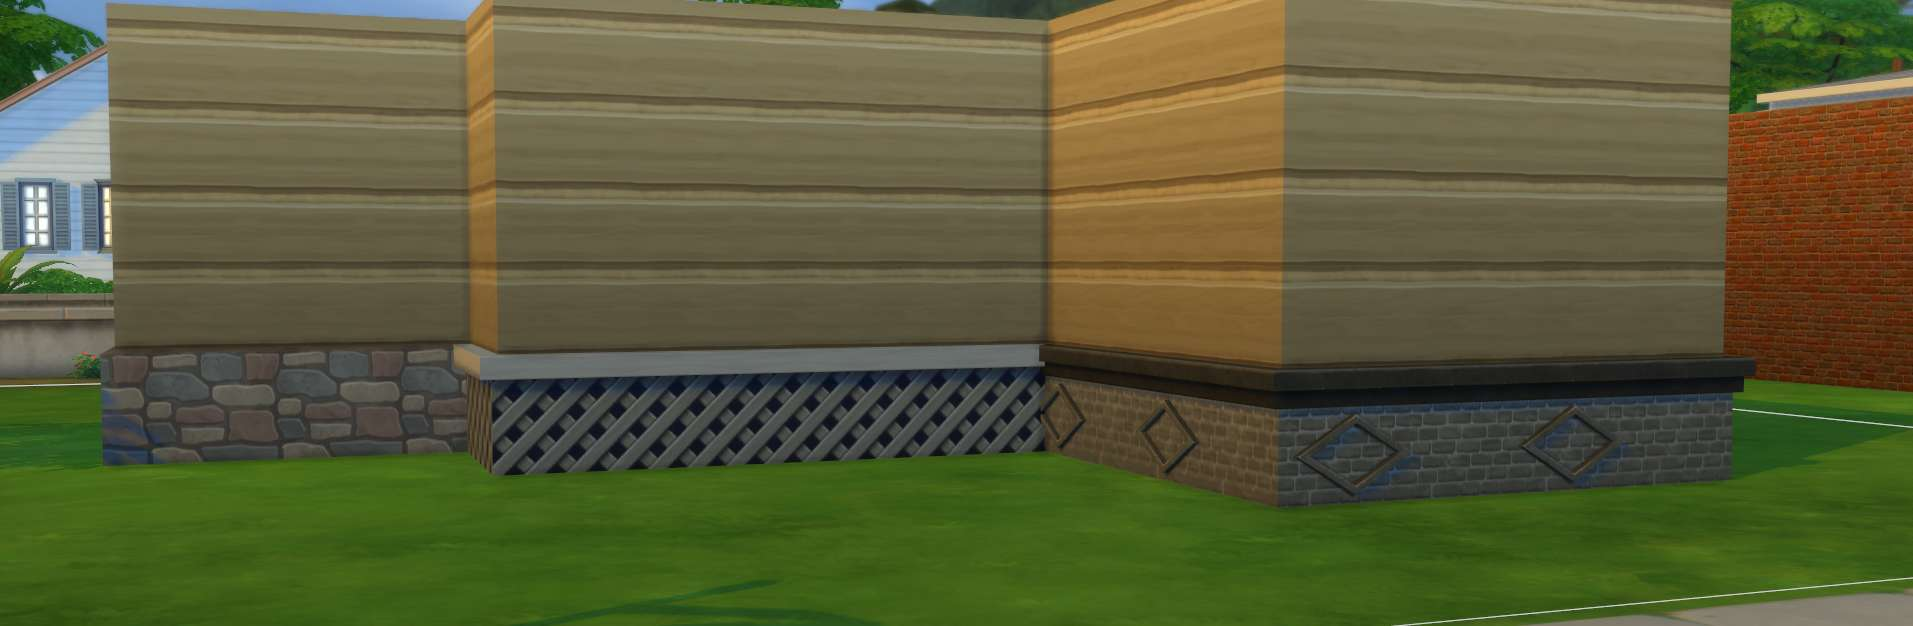 Sims 4 Building How To S Foundation Finishes Should Be Added Each Room